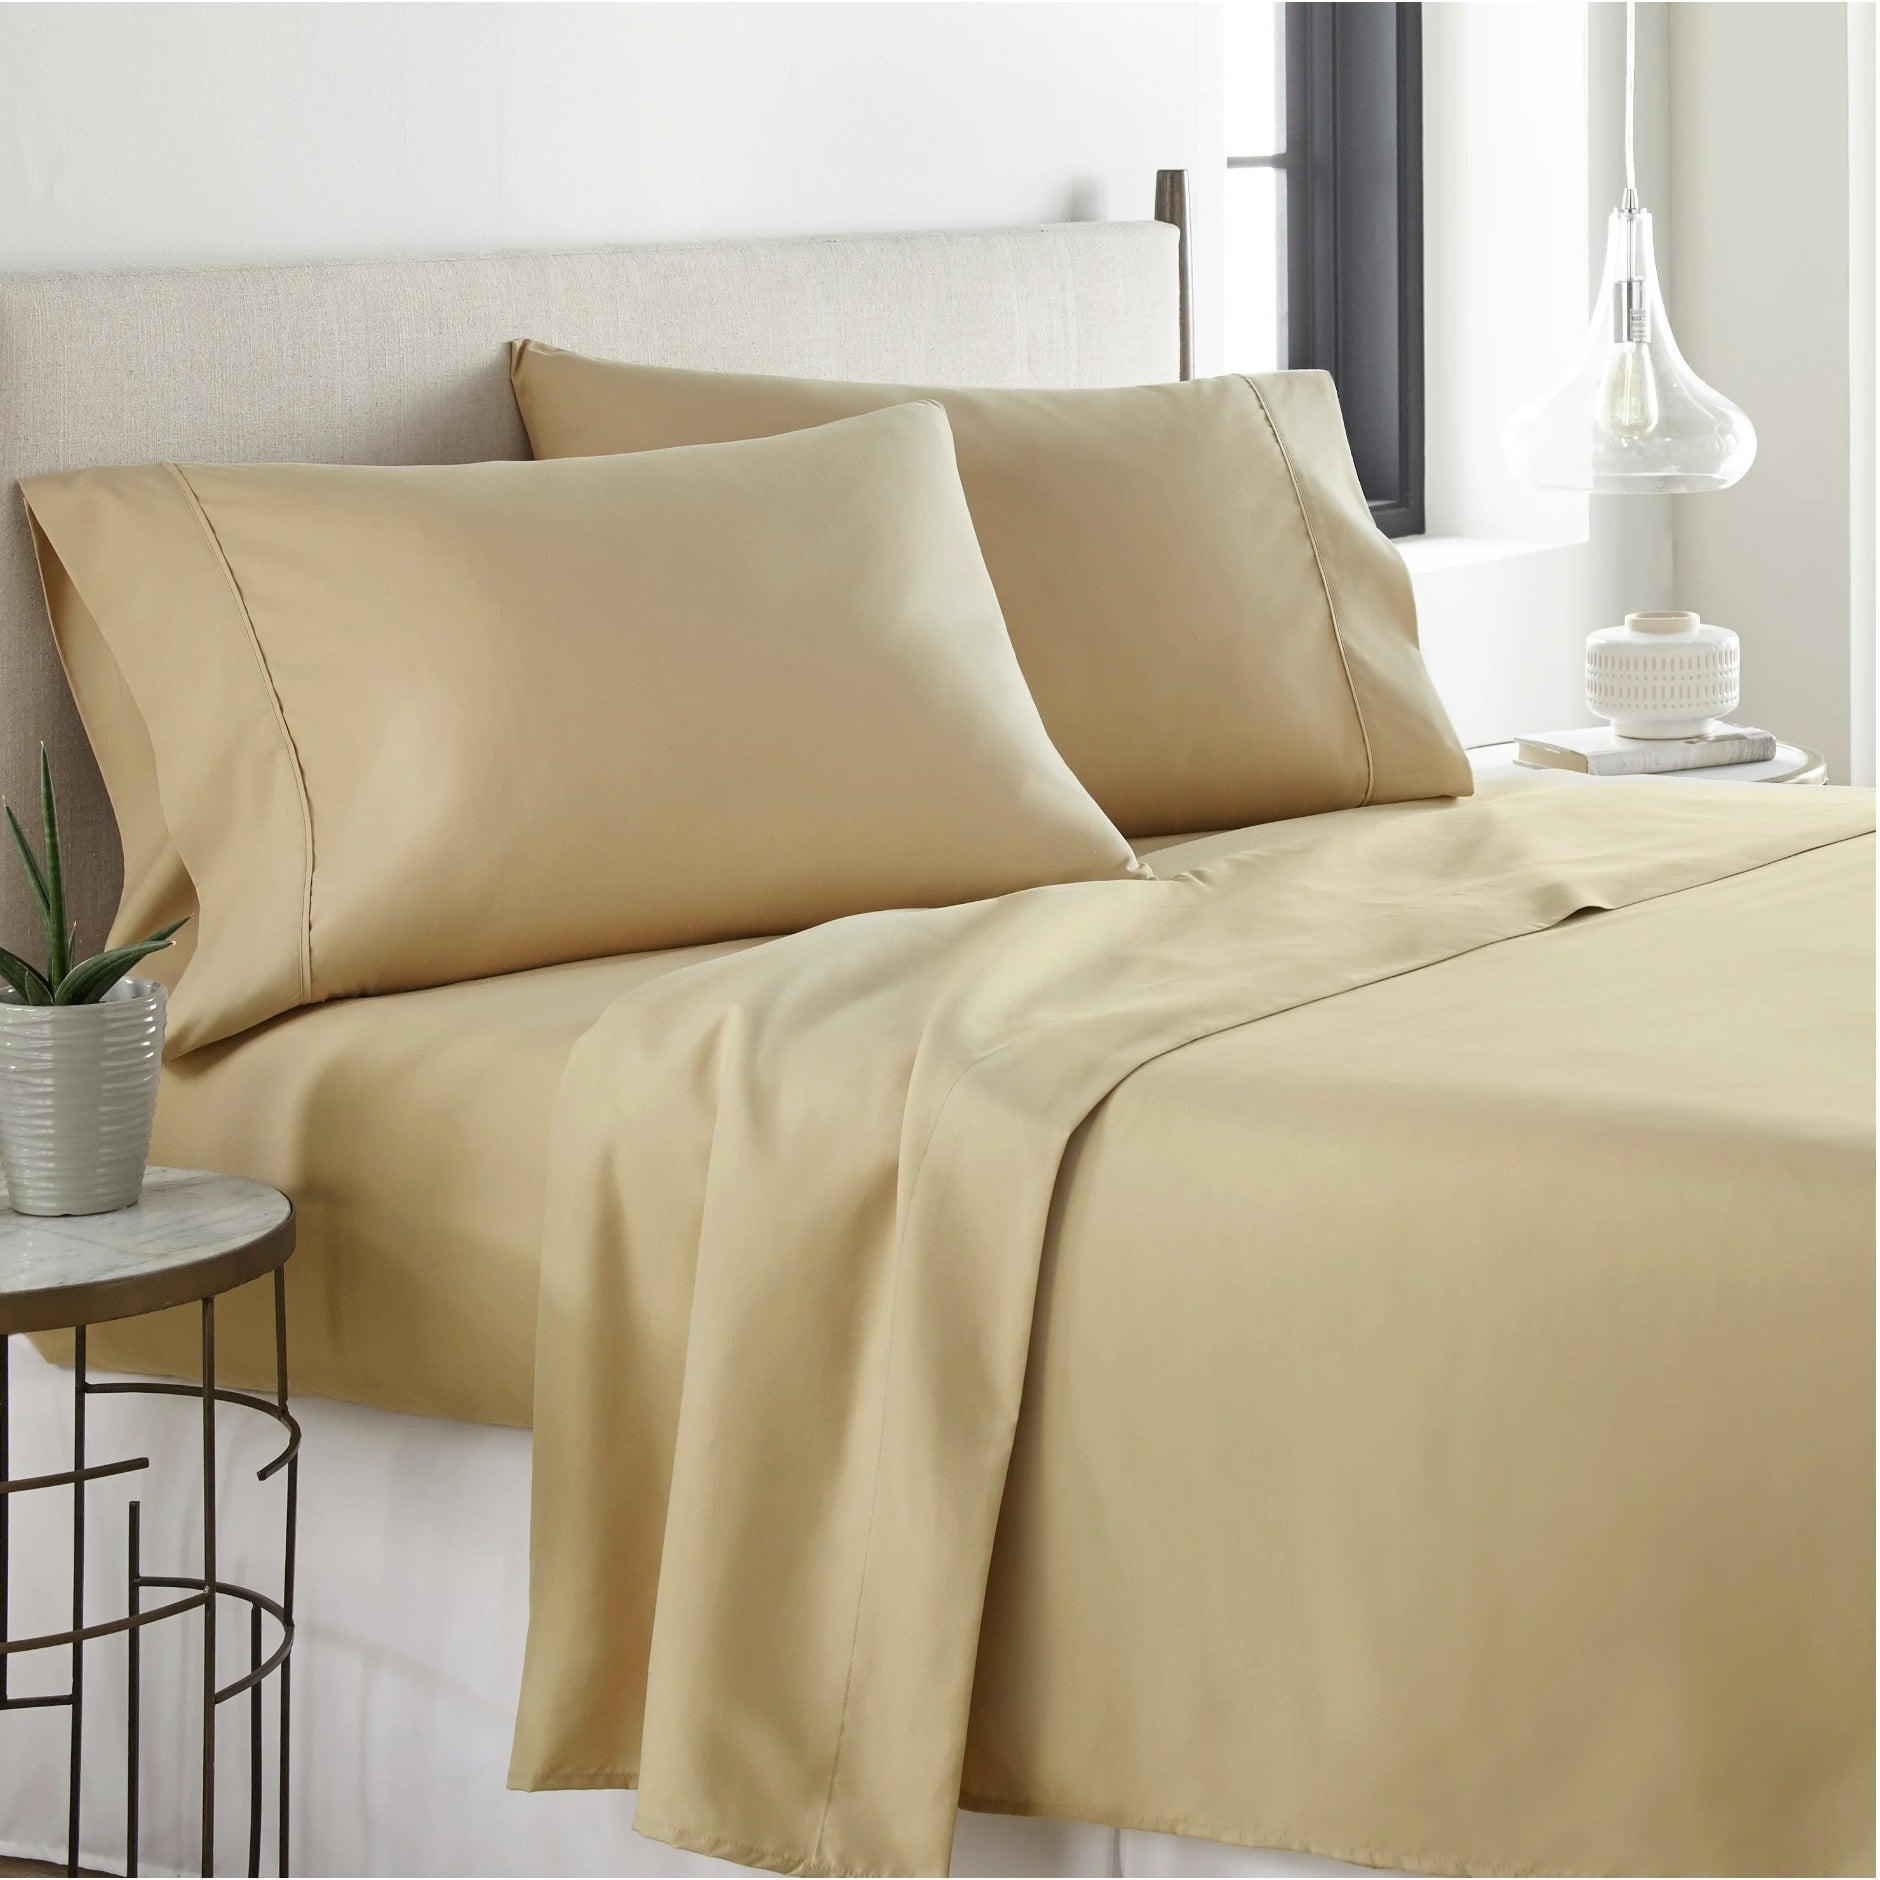 Hotel Luxury Bed Sheets Set 1800 Series Platinum Collection Deep Pockets Wrinkle Fade Resistant Top Quality Soft Bedding Free Shipping On Orders